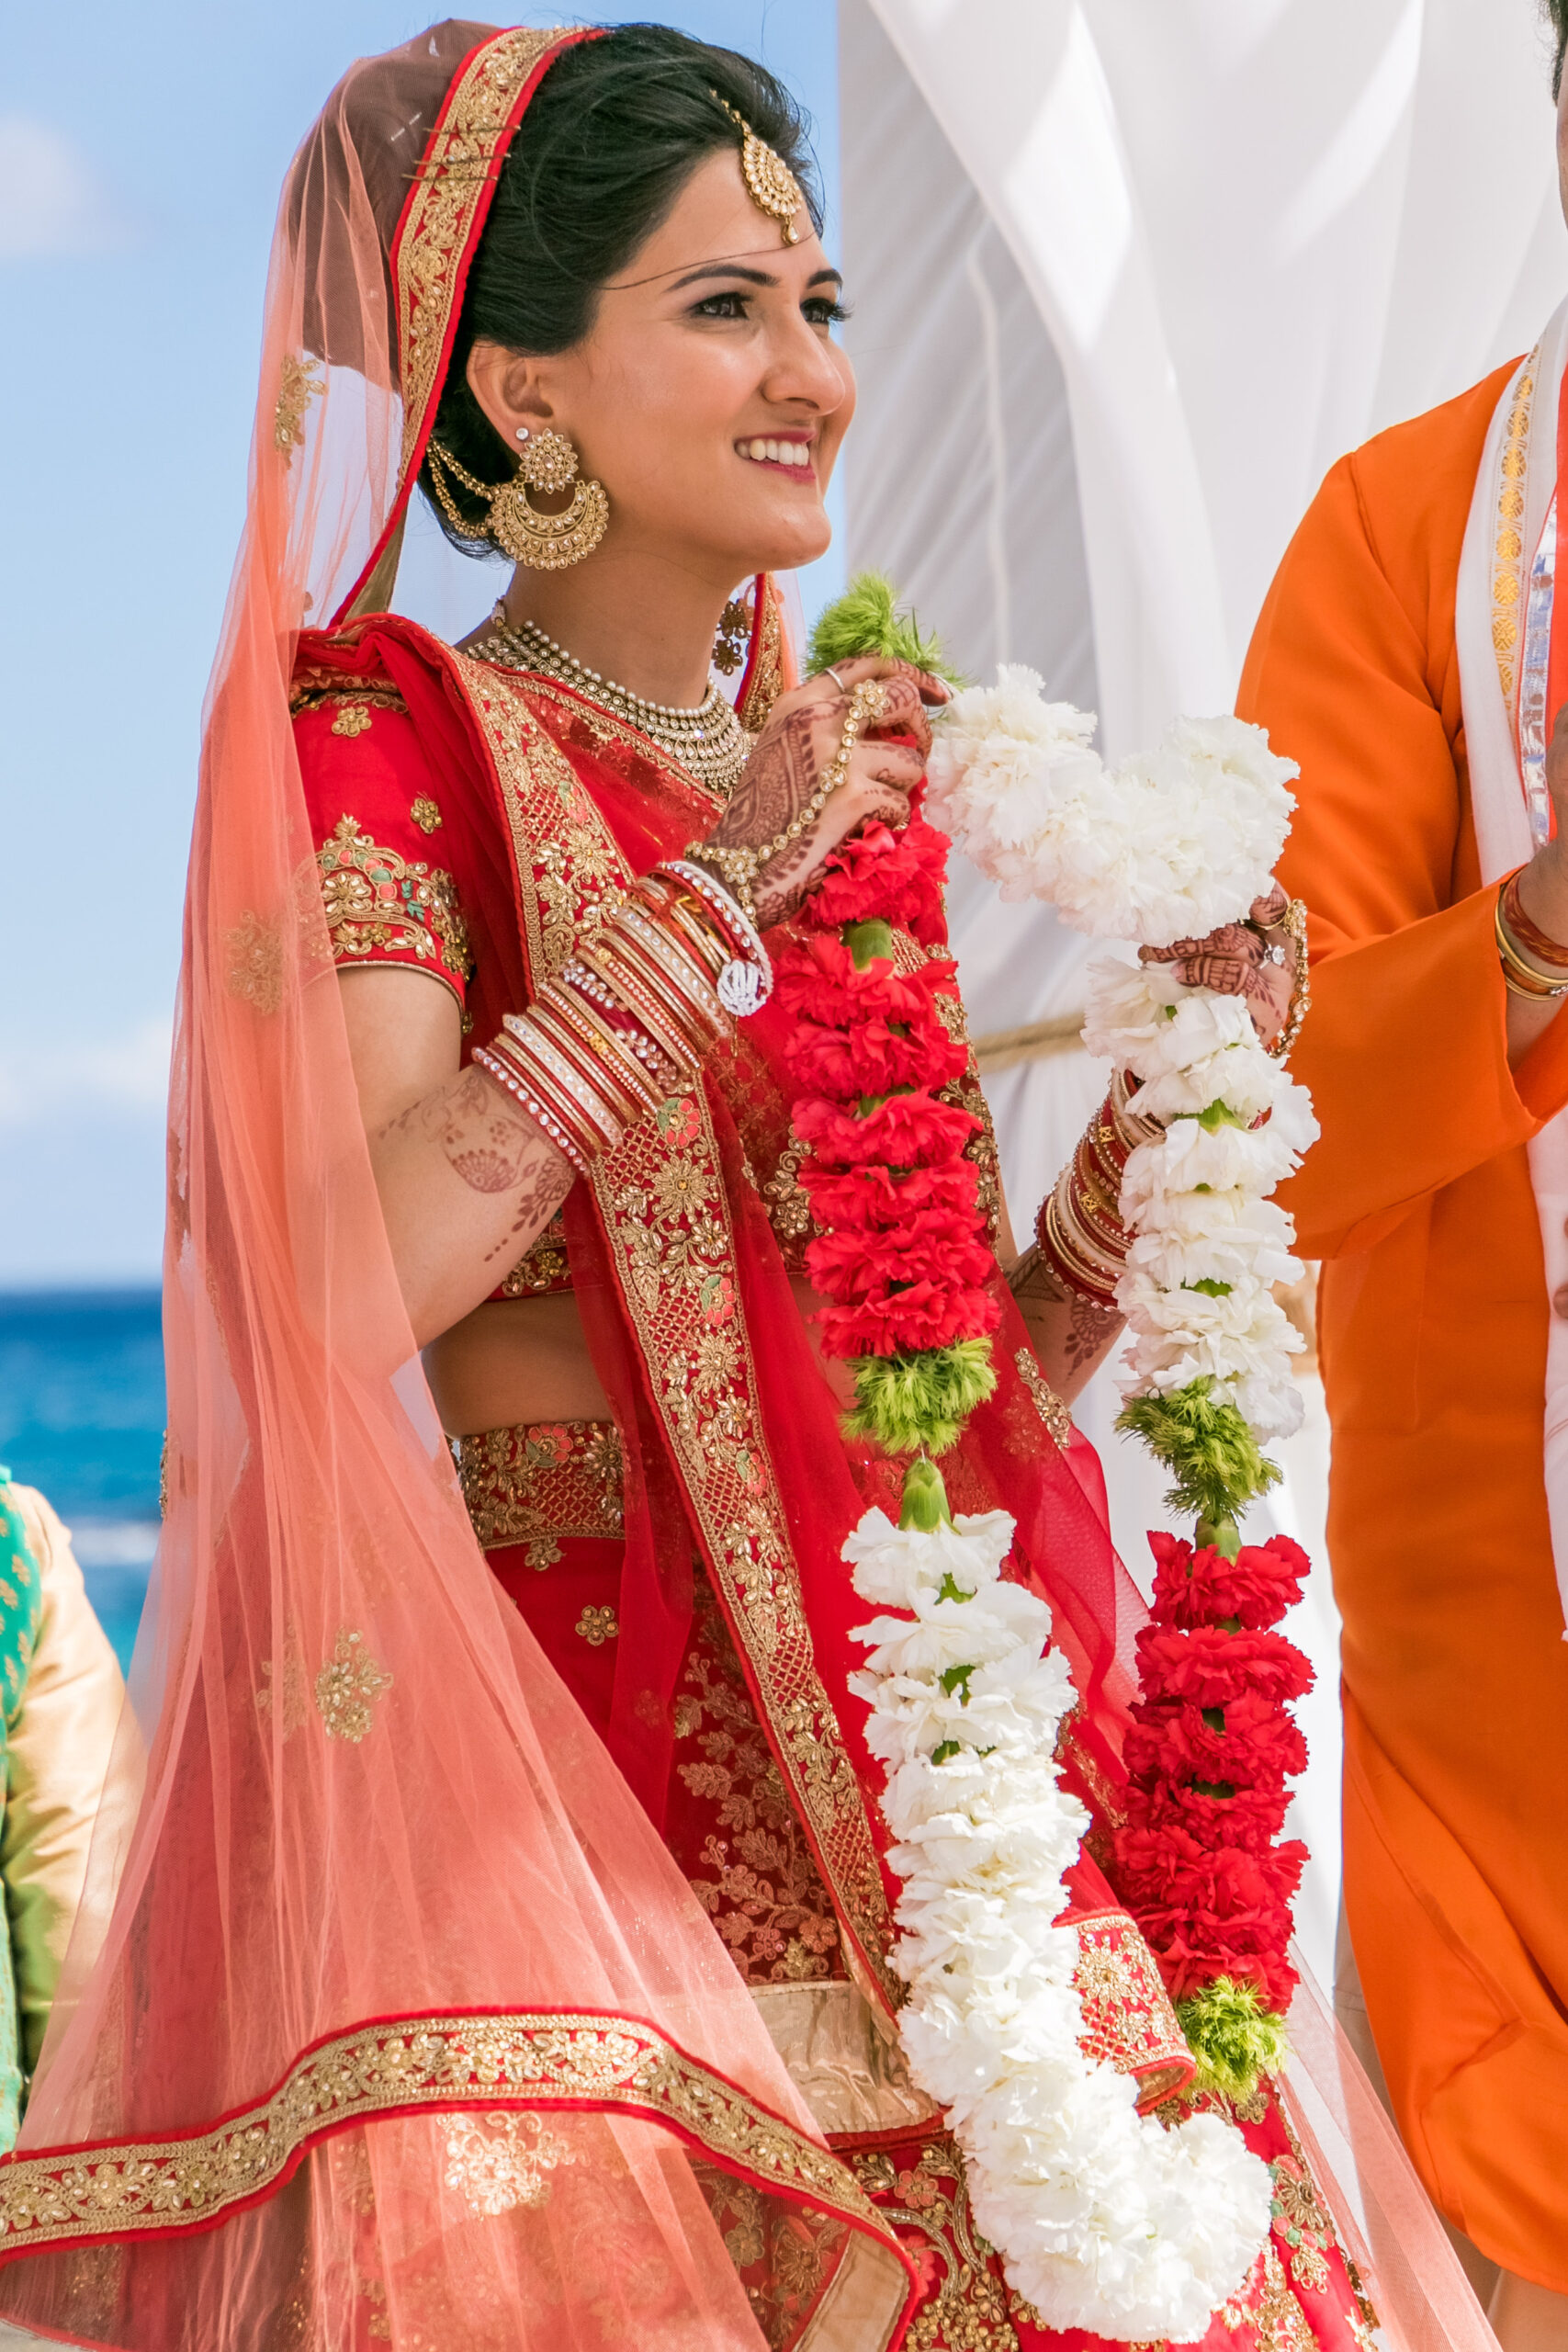 Hindu Wedding beach destination Mexico Los Cabos